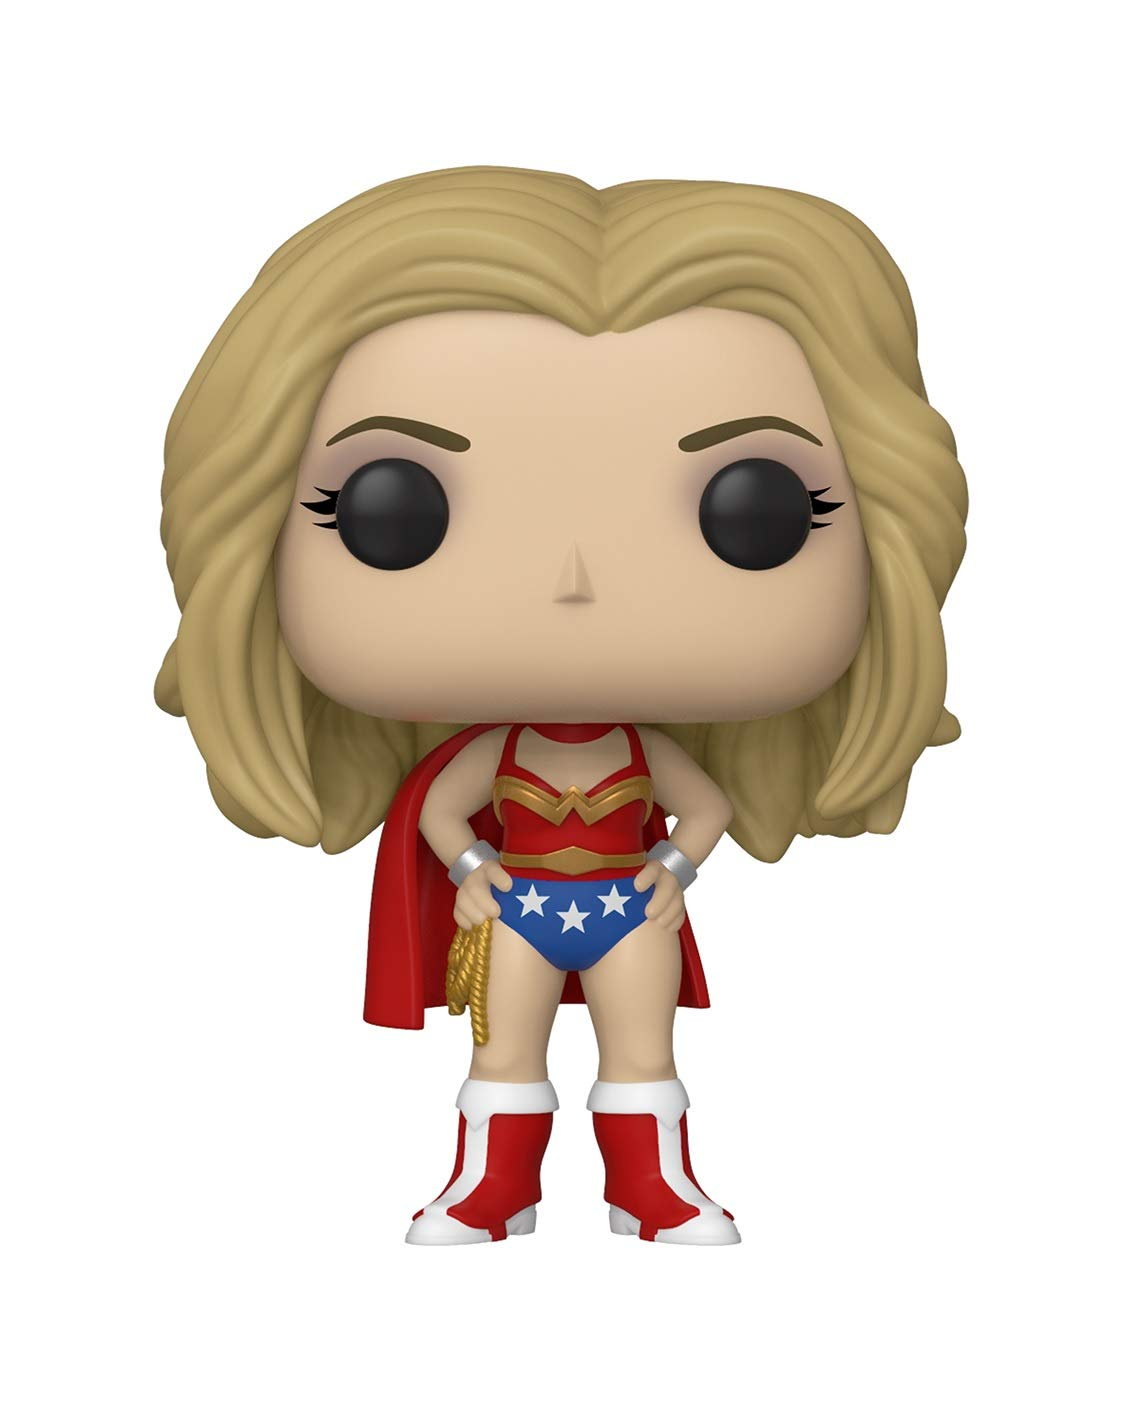 Penny as Wonder Woman Funko Pop 2019 SDCC Summer Convention The Big Band Theory 835